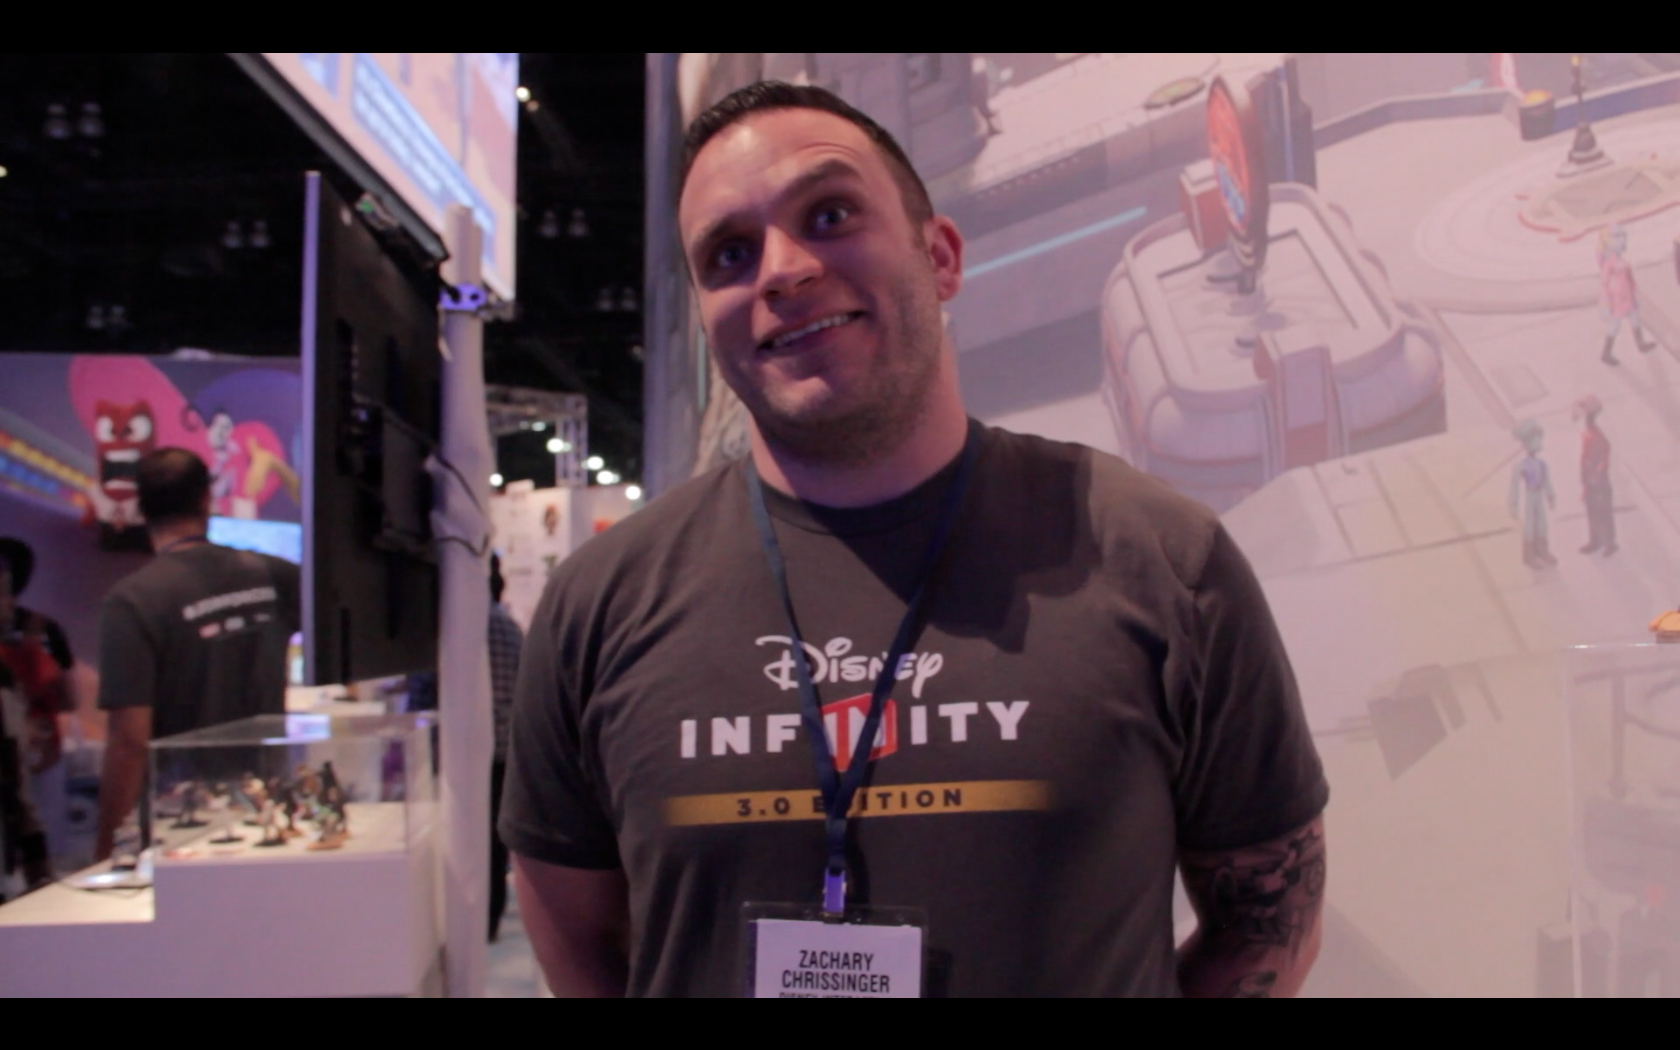 Disney Infinity 3.0 Interview with Zachary Chrissinger at E3